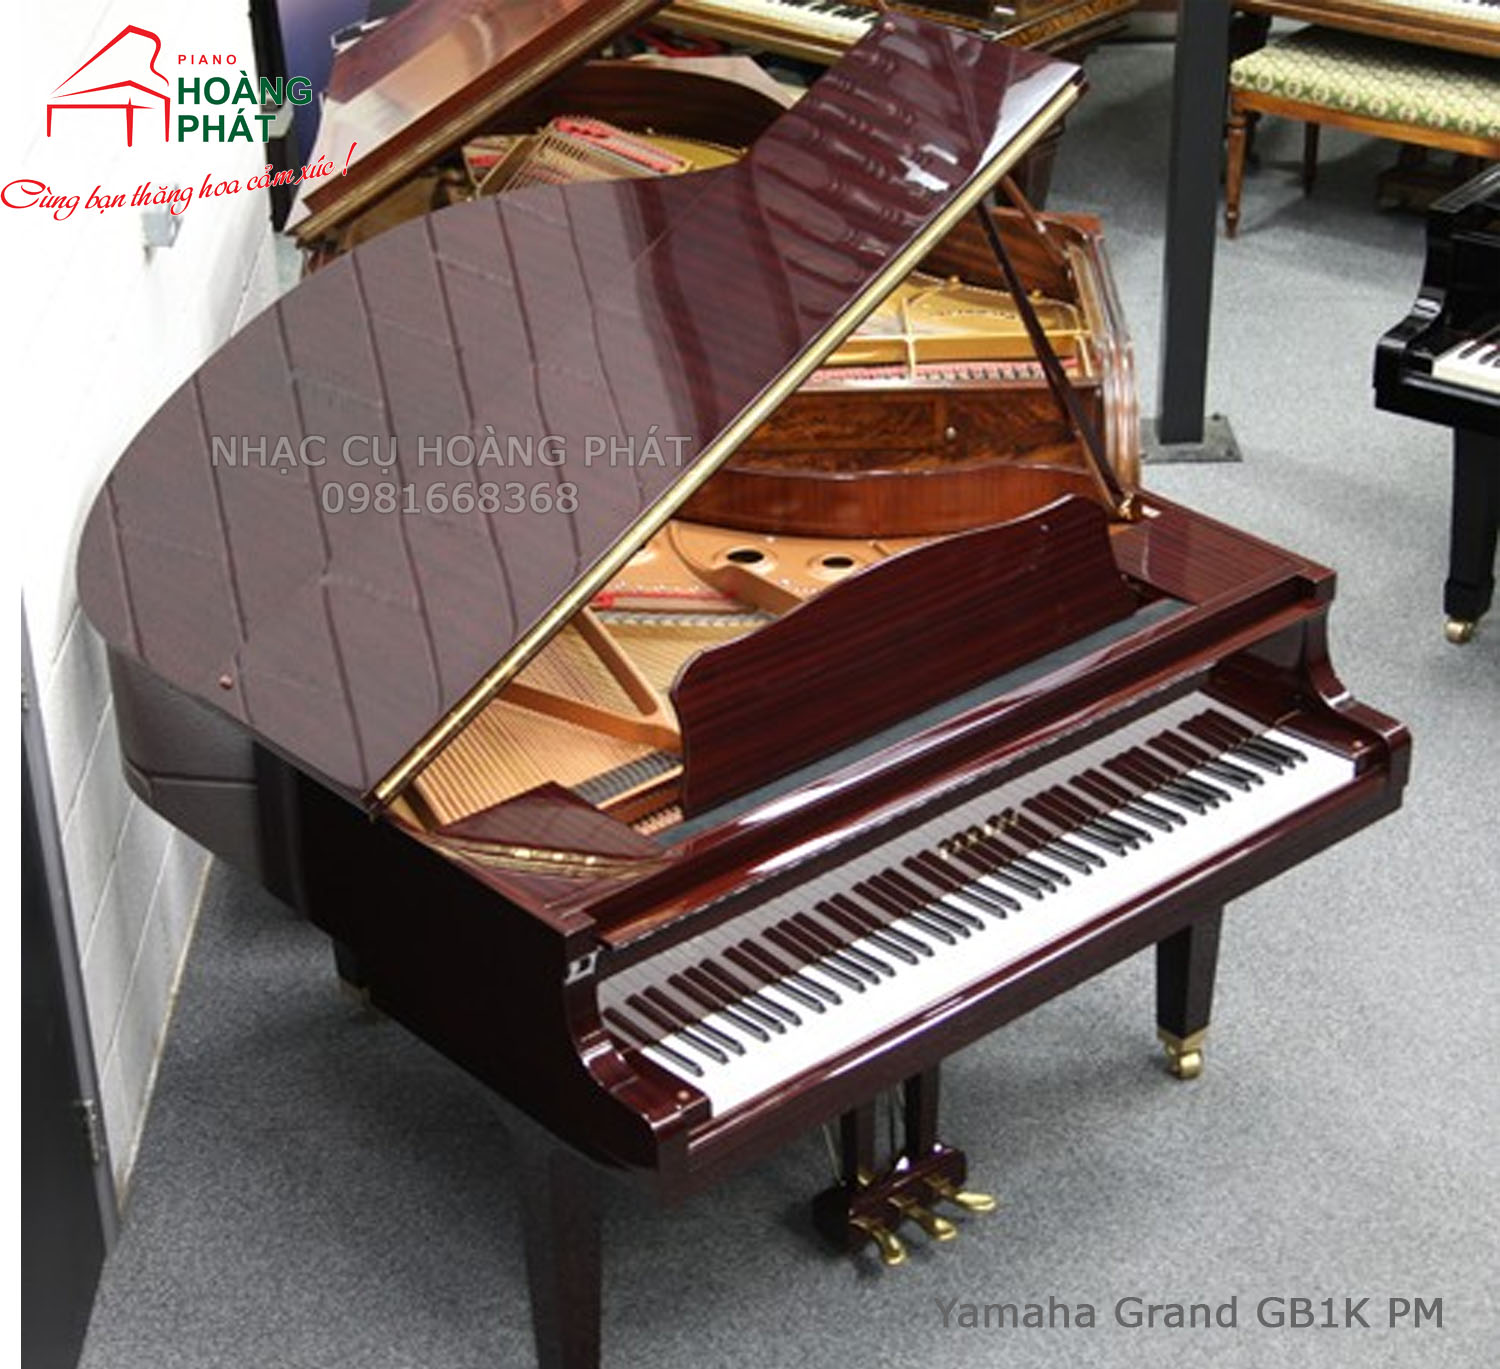 Yamaha Grand GB1K PM